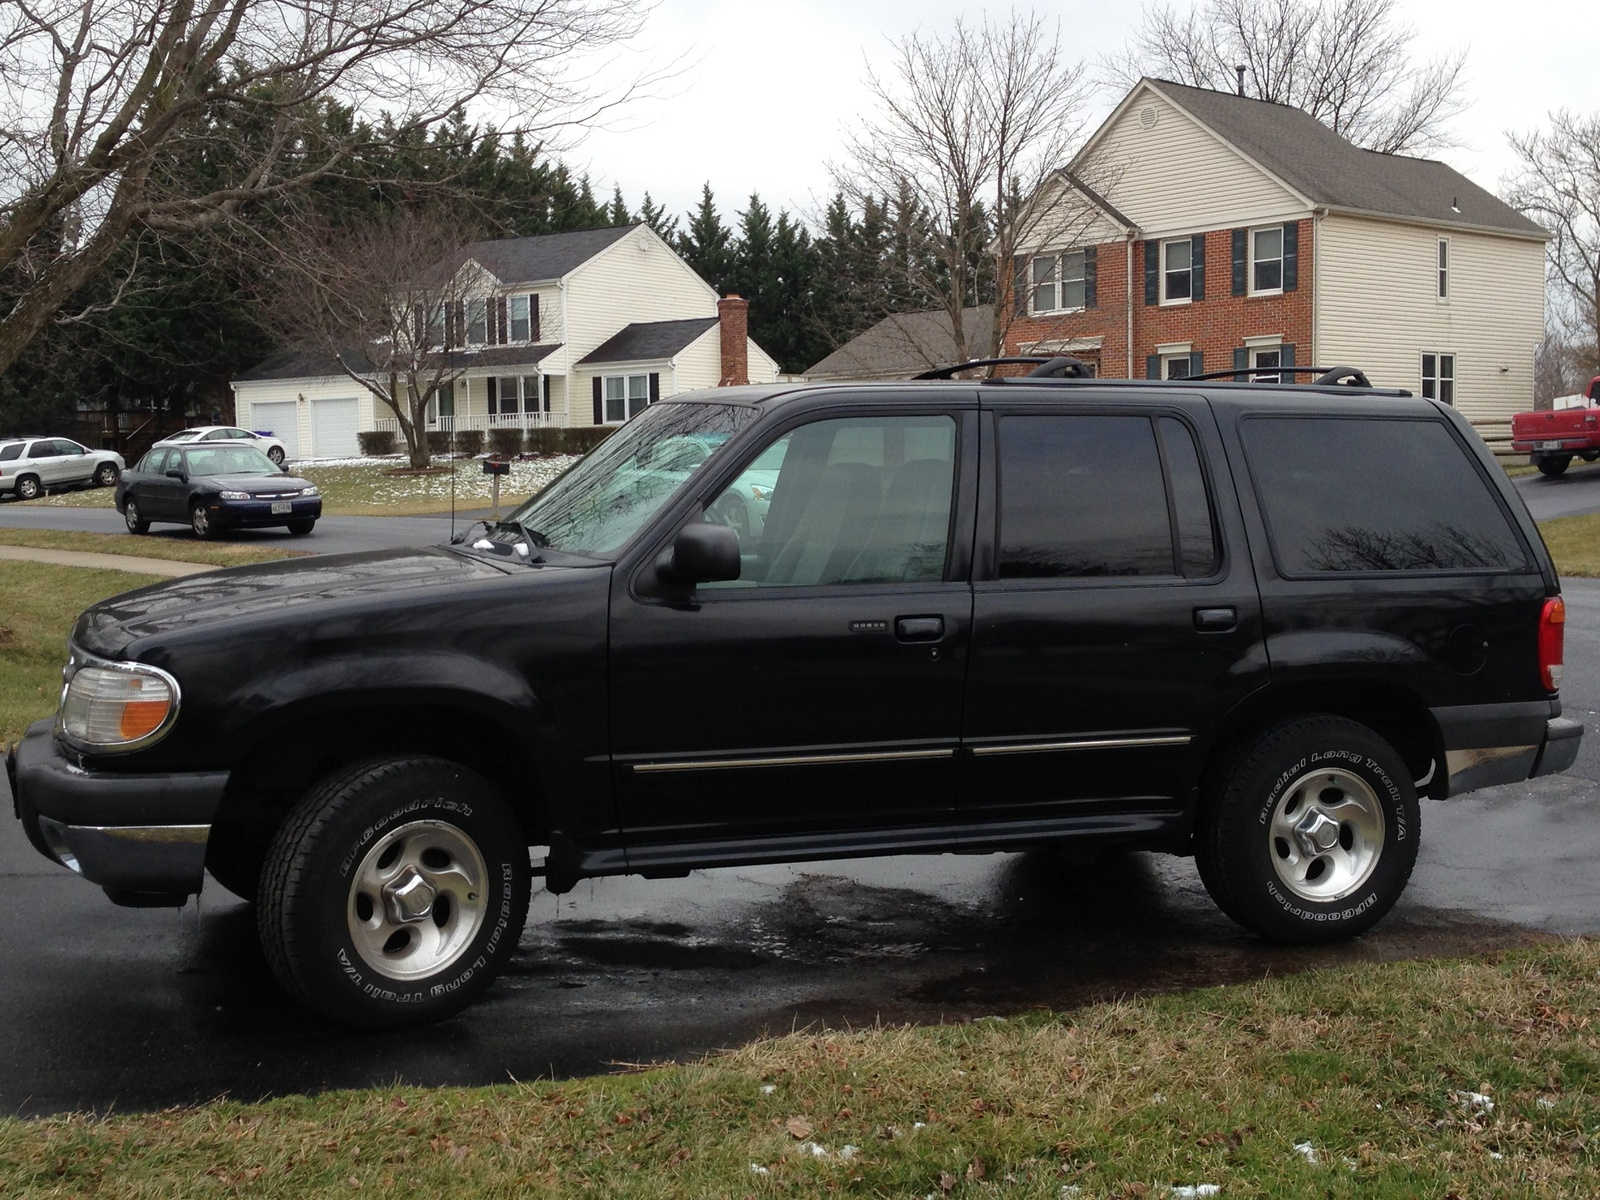 2001 Ford Explorer - Pictures